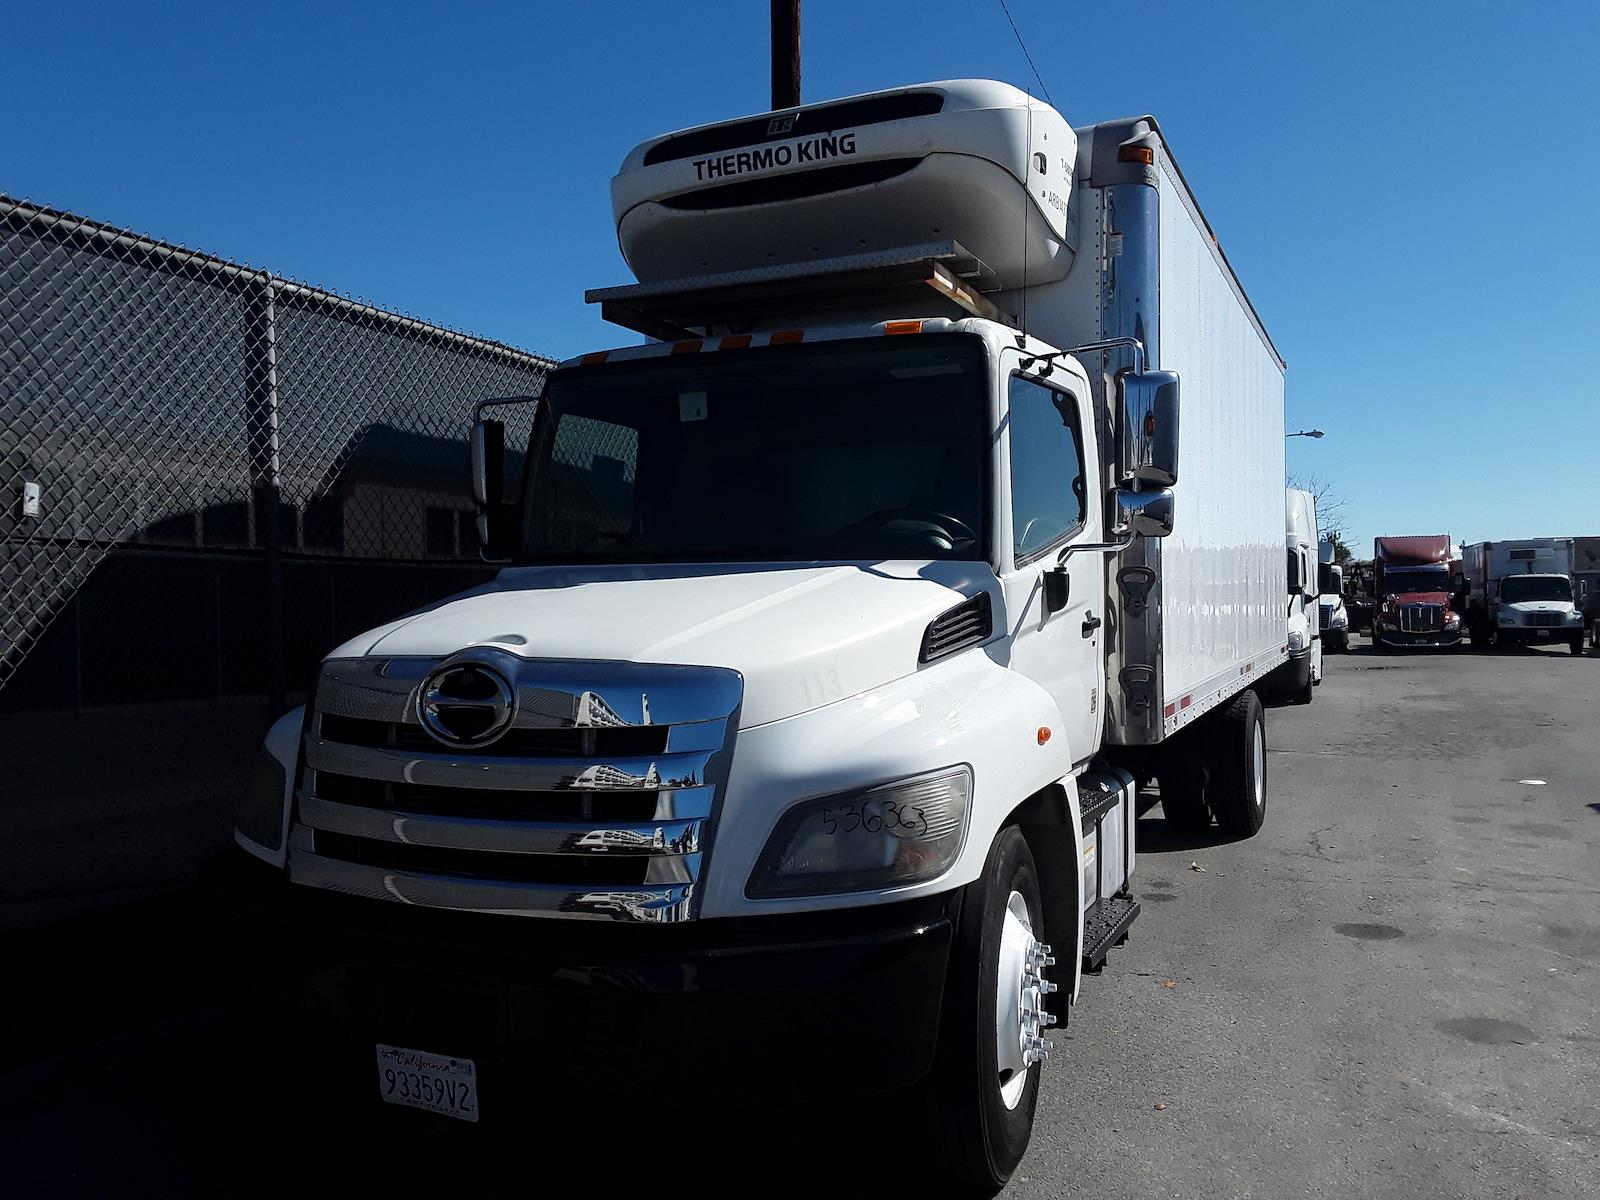 2014 Hino Truck, Refrigerated Body #536363 - photo 1